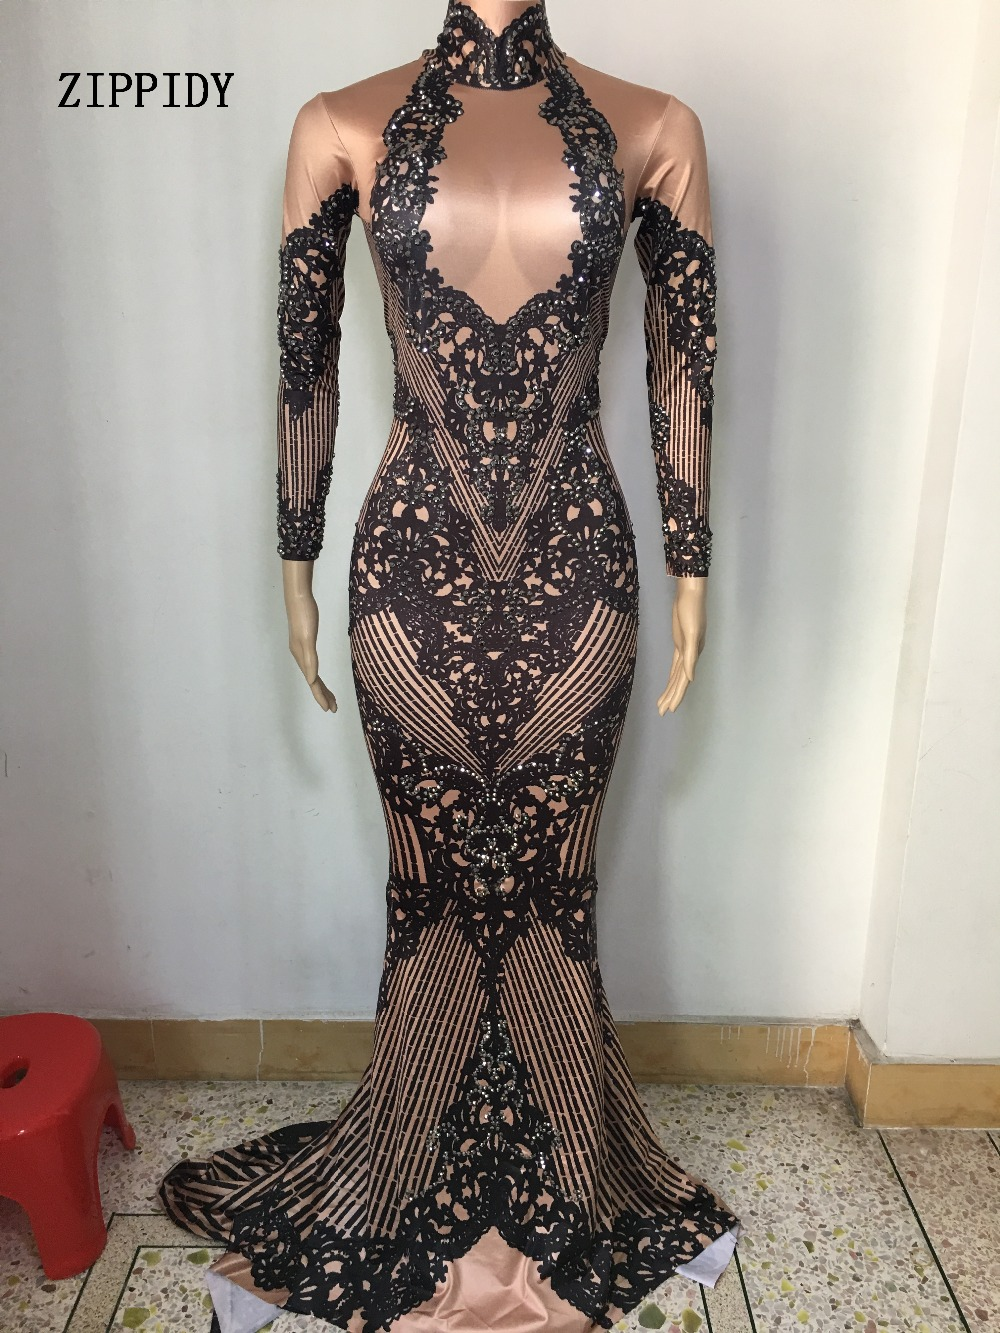 Fashion Sparkly Crystals Dress 3 Colors Evening Printed Costume Celebrate  Rhinestones Dress Birthday Long Tail Dresses-in Dresses from Women's Clothing    2